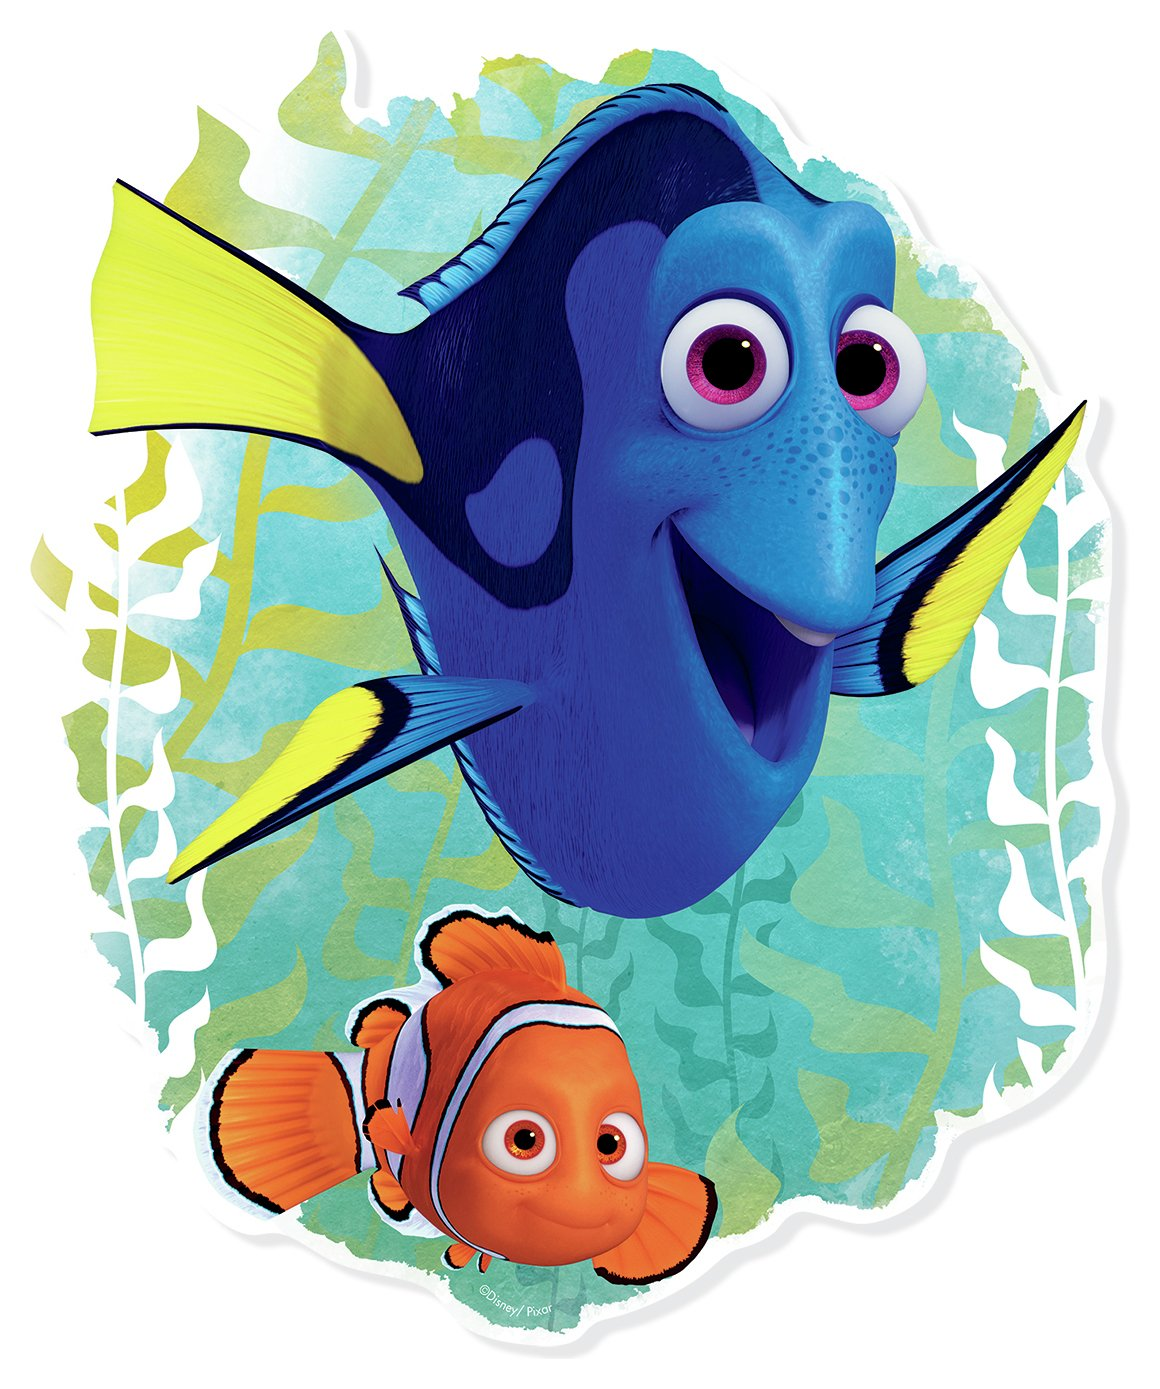 Star Cutouts Finding Dory With Nemo.